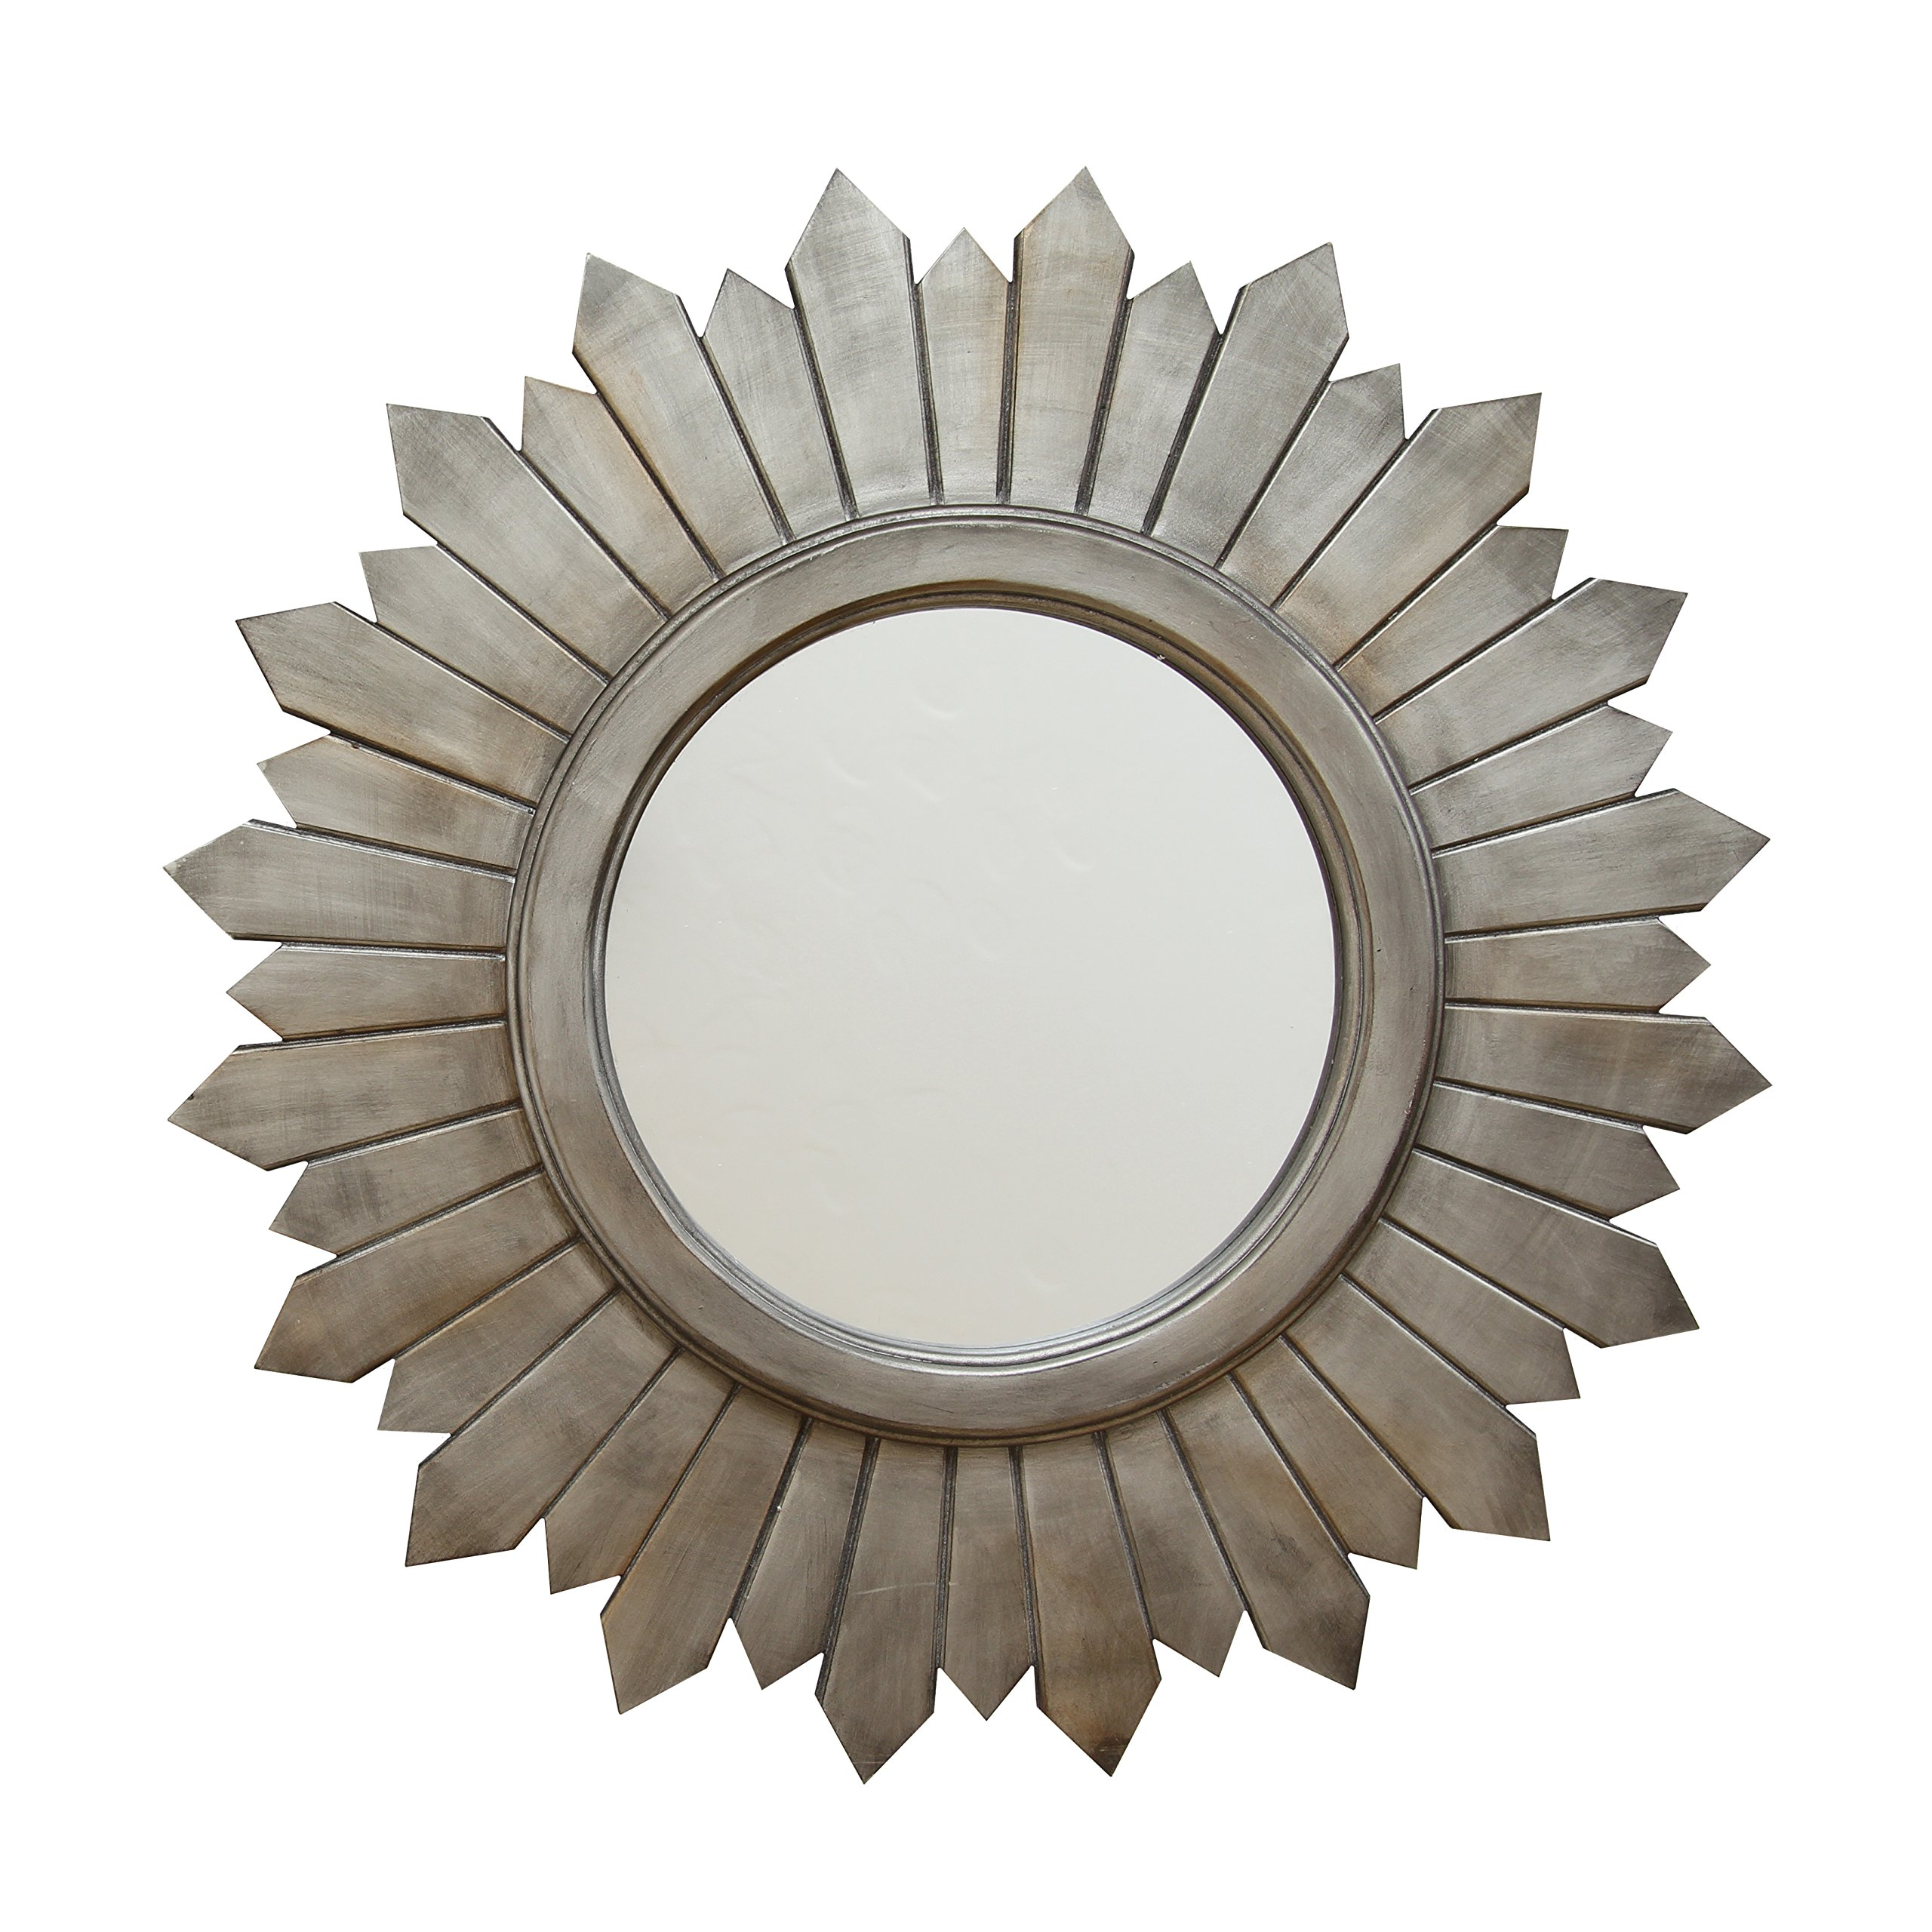 Stratton Home Decor S02379 Madilyn Wood Mirror